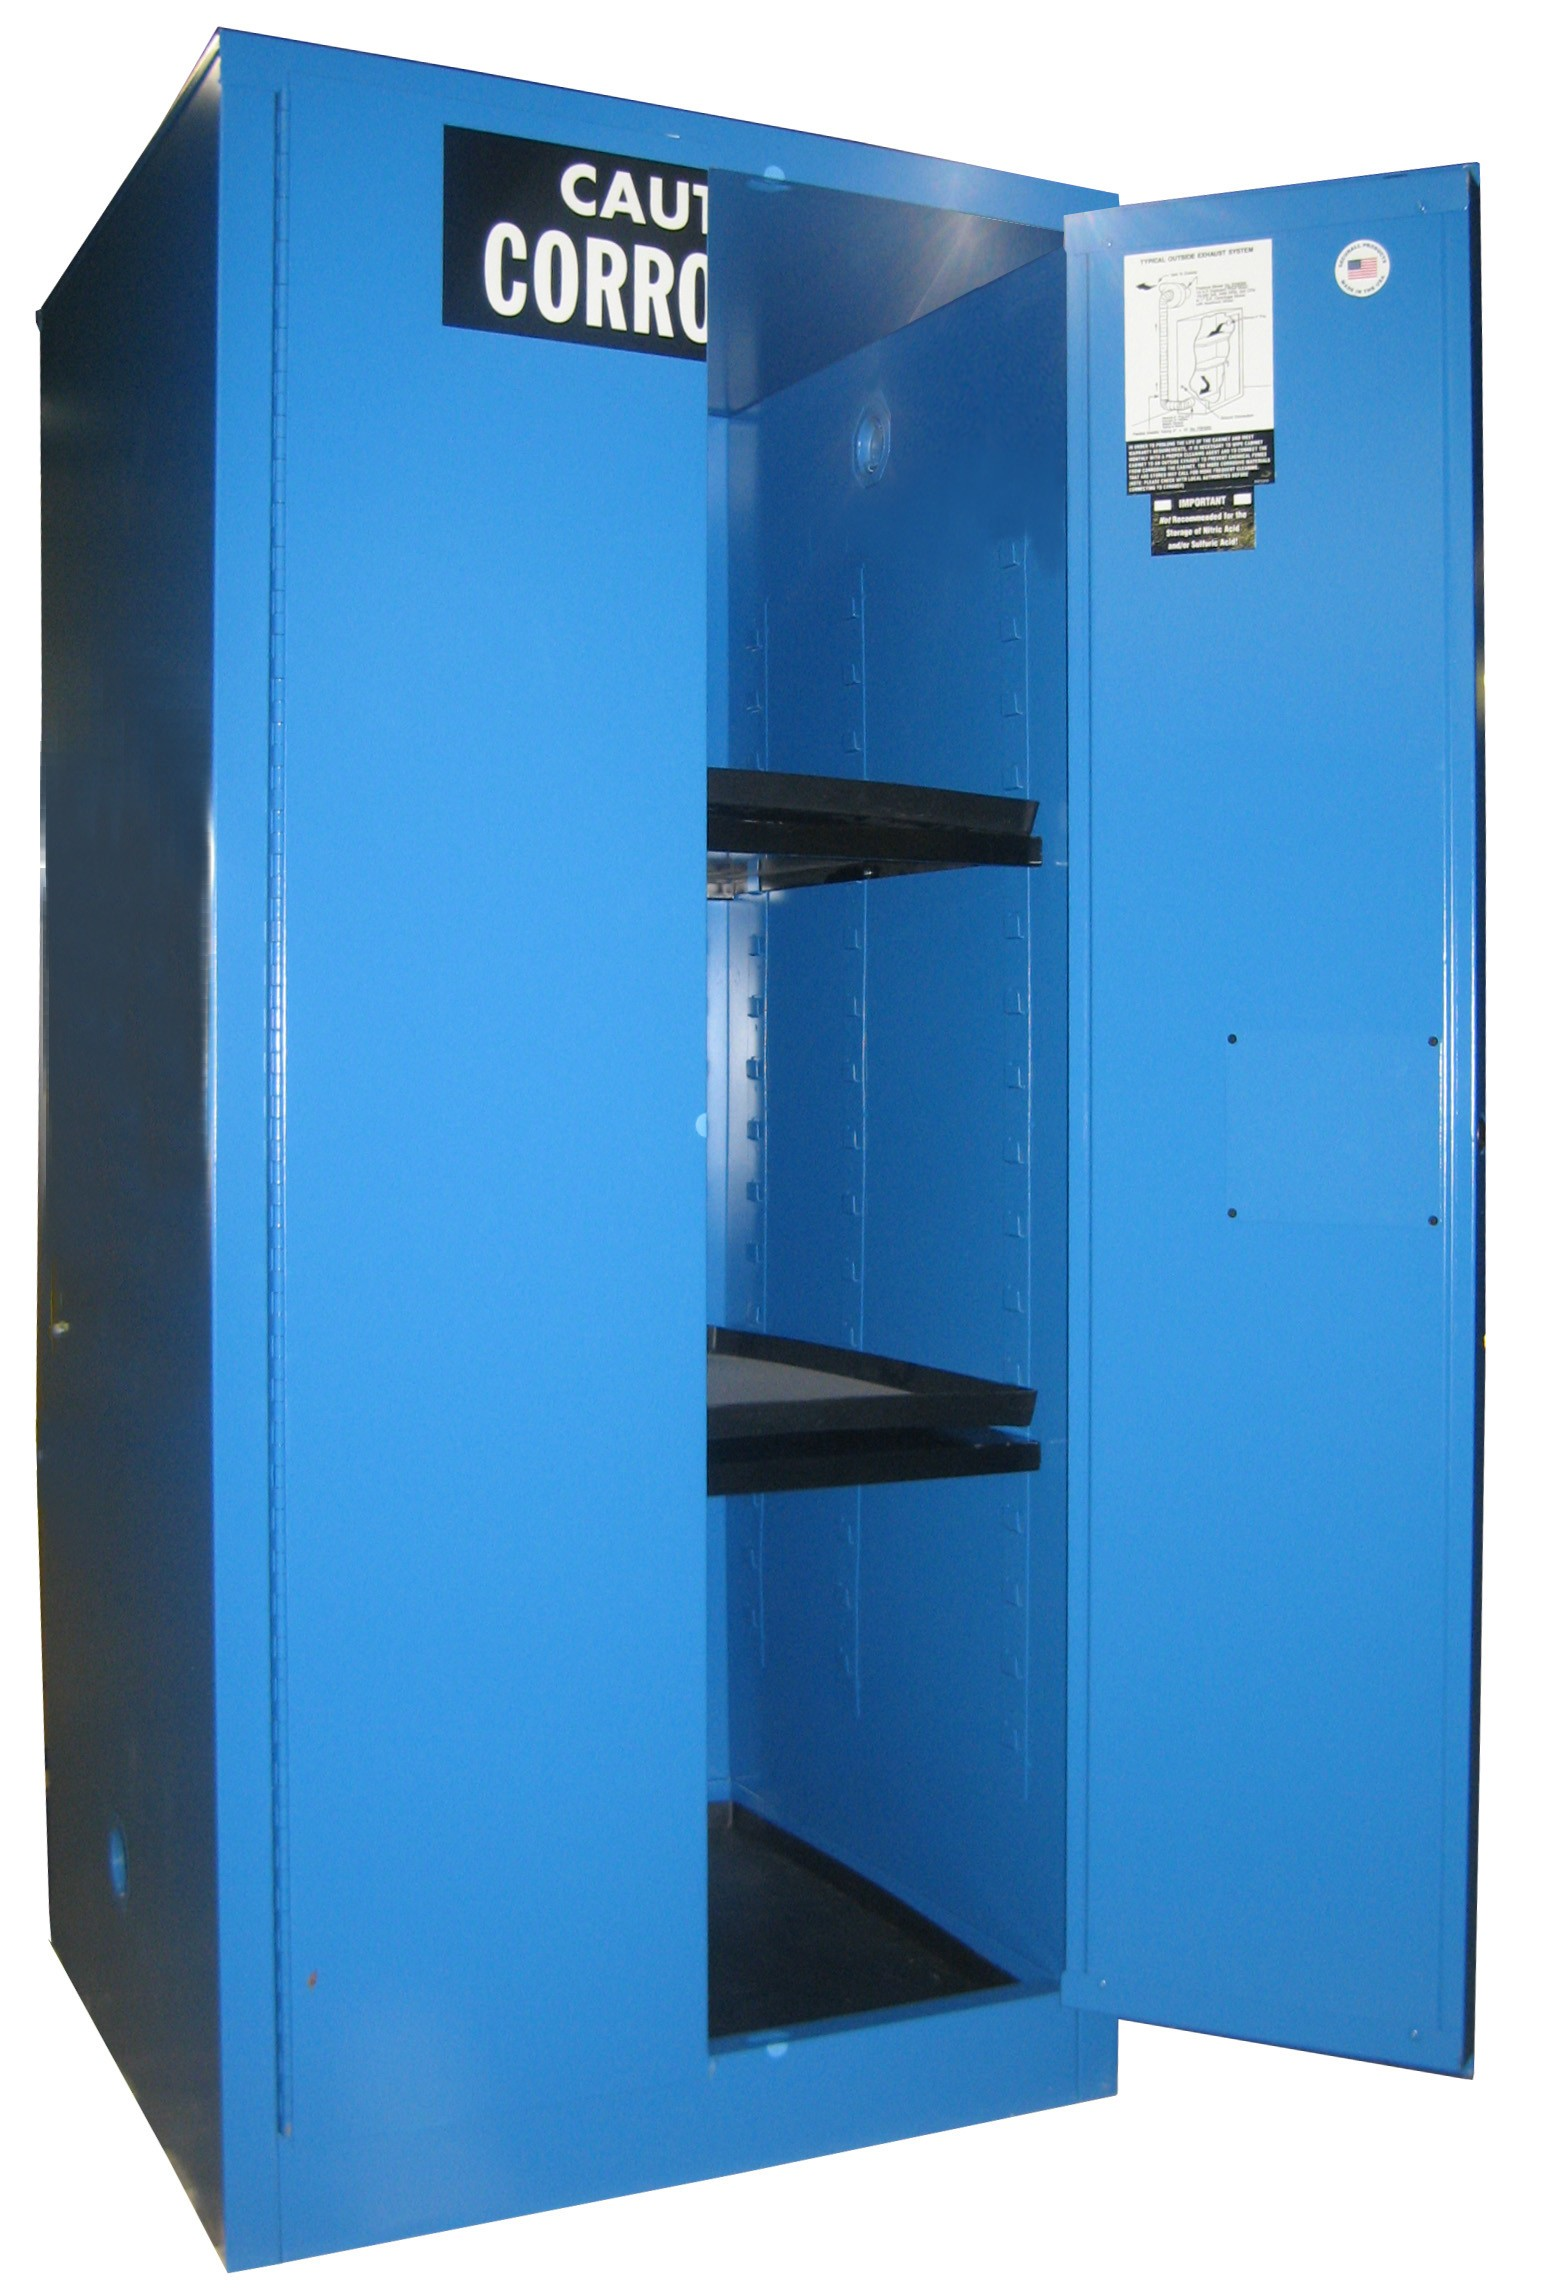 C160 - Acid/Corrosive Storage Cabinet - 60 Gal. Self-Latch Standard 2-Door